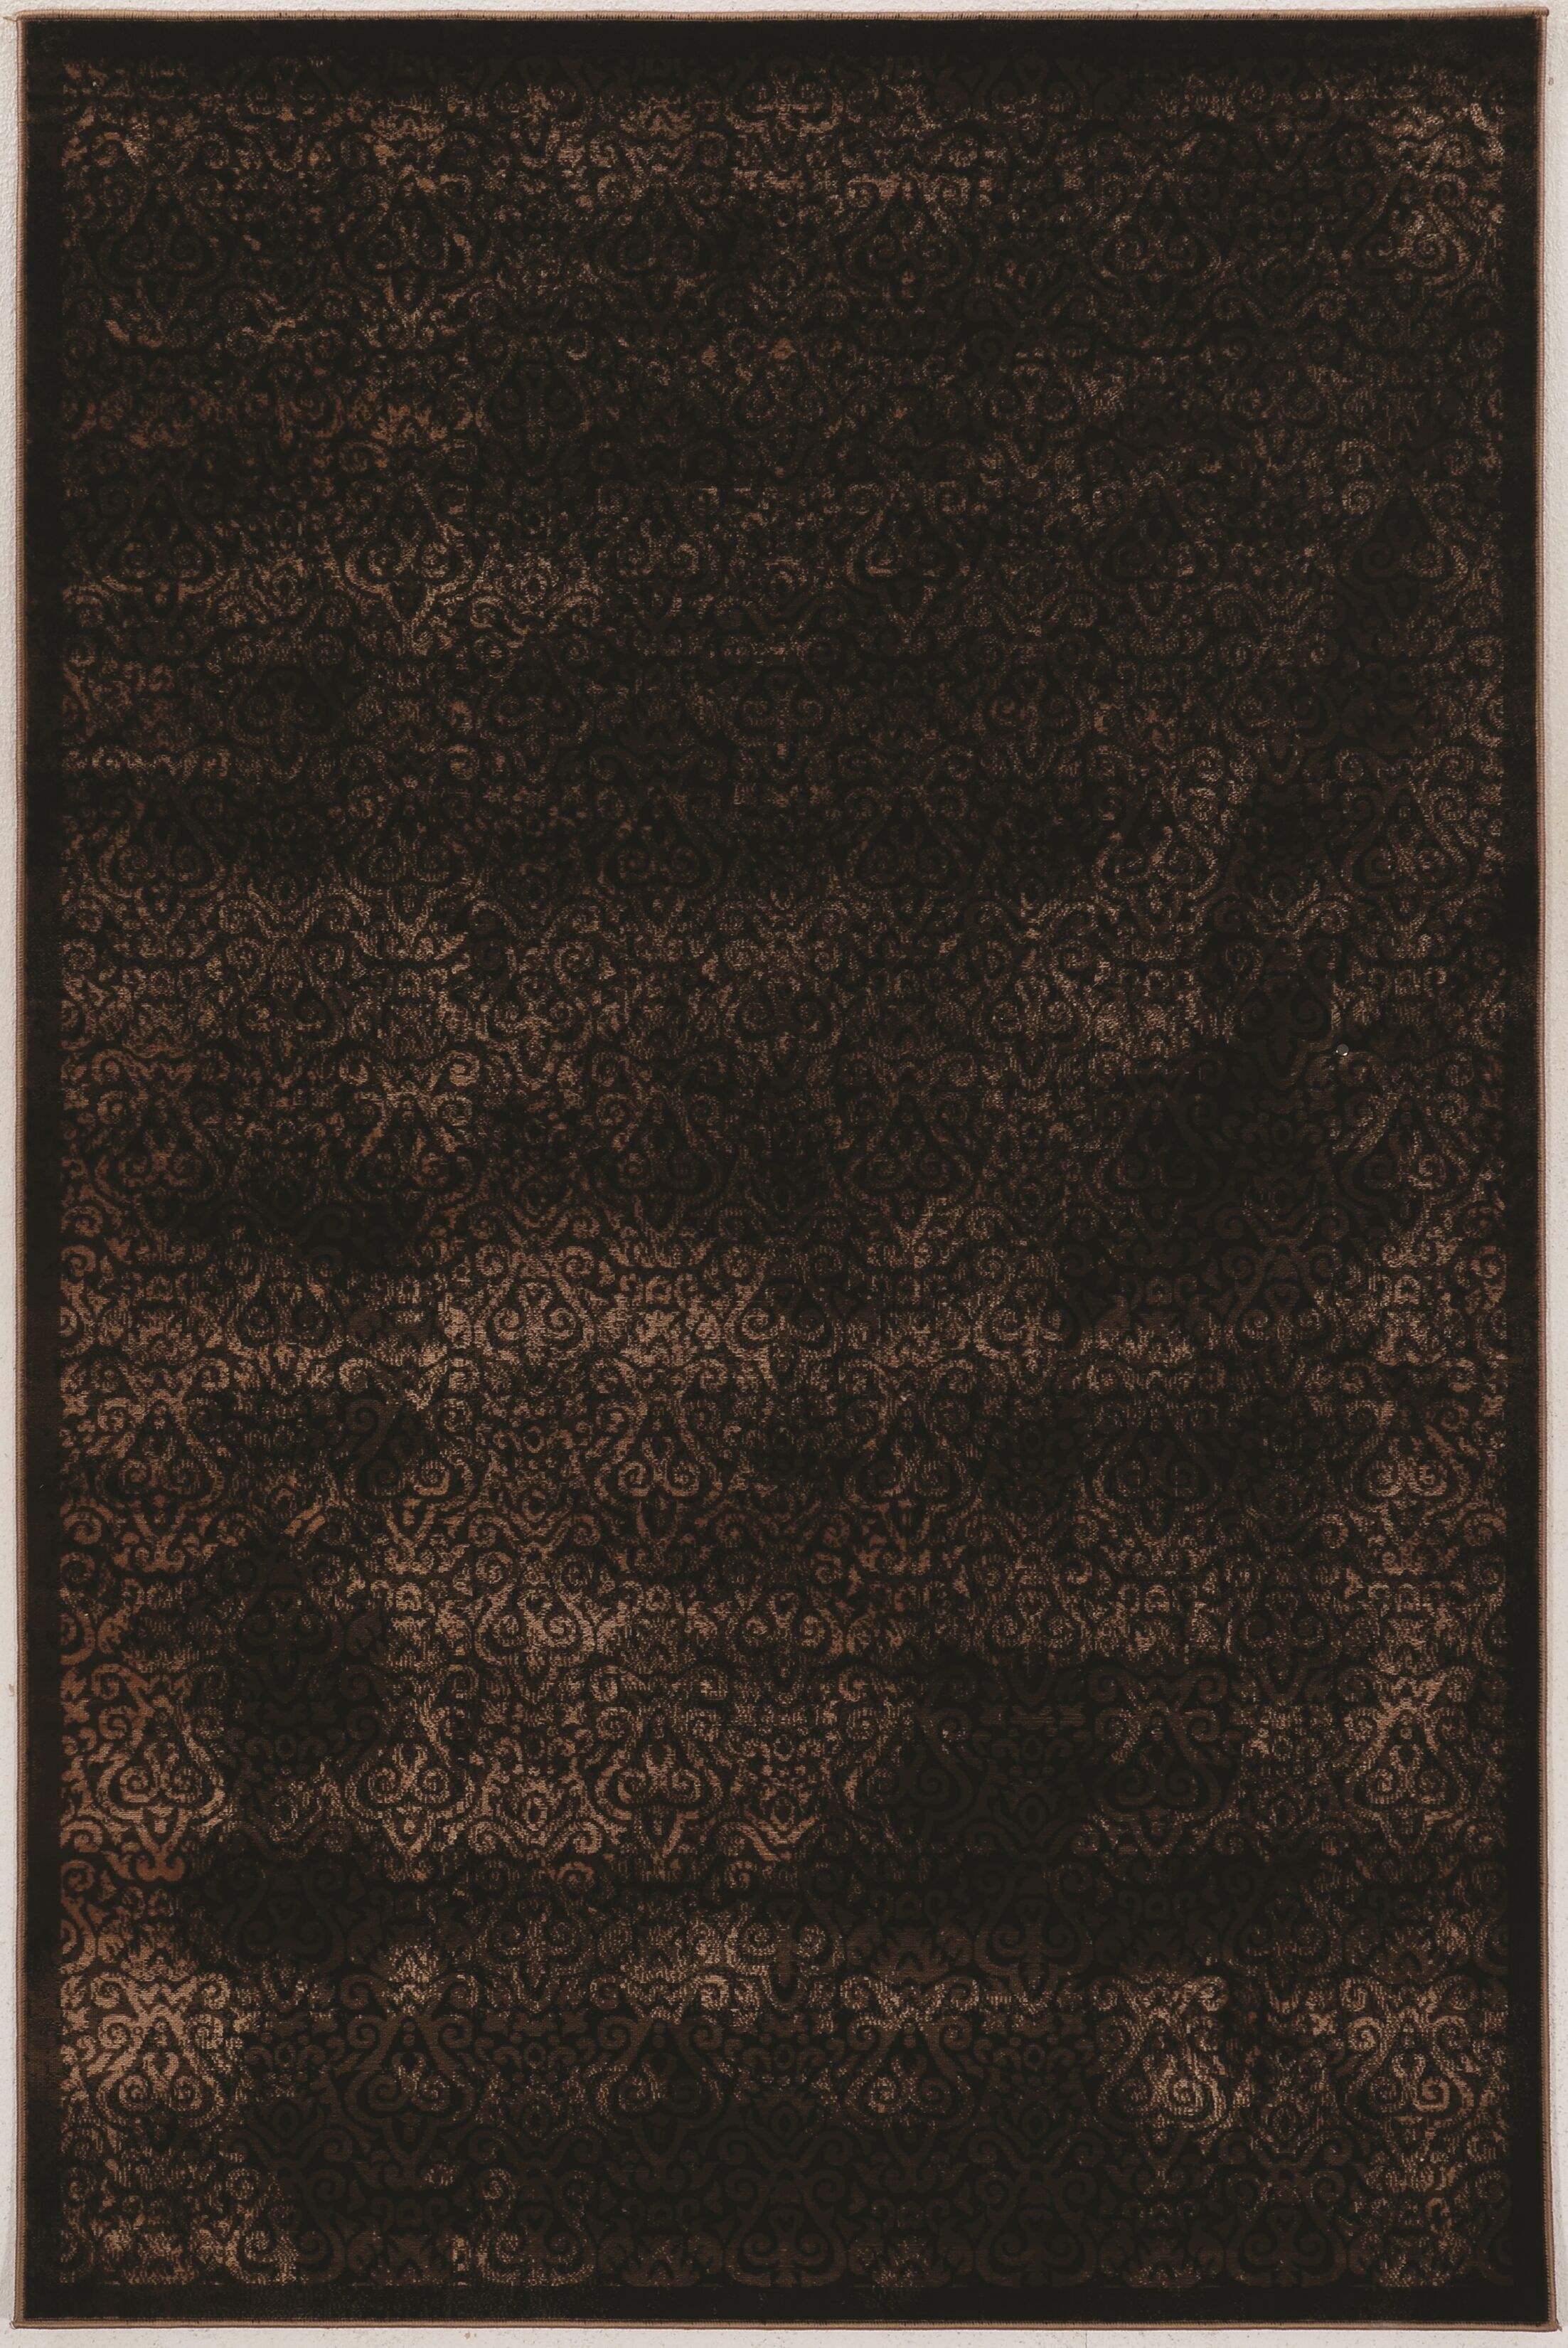 Bluff Canyon Ilussion Brown Area Rug Rug Size: Rectangle 5' x 7'6